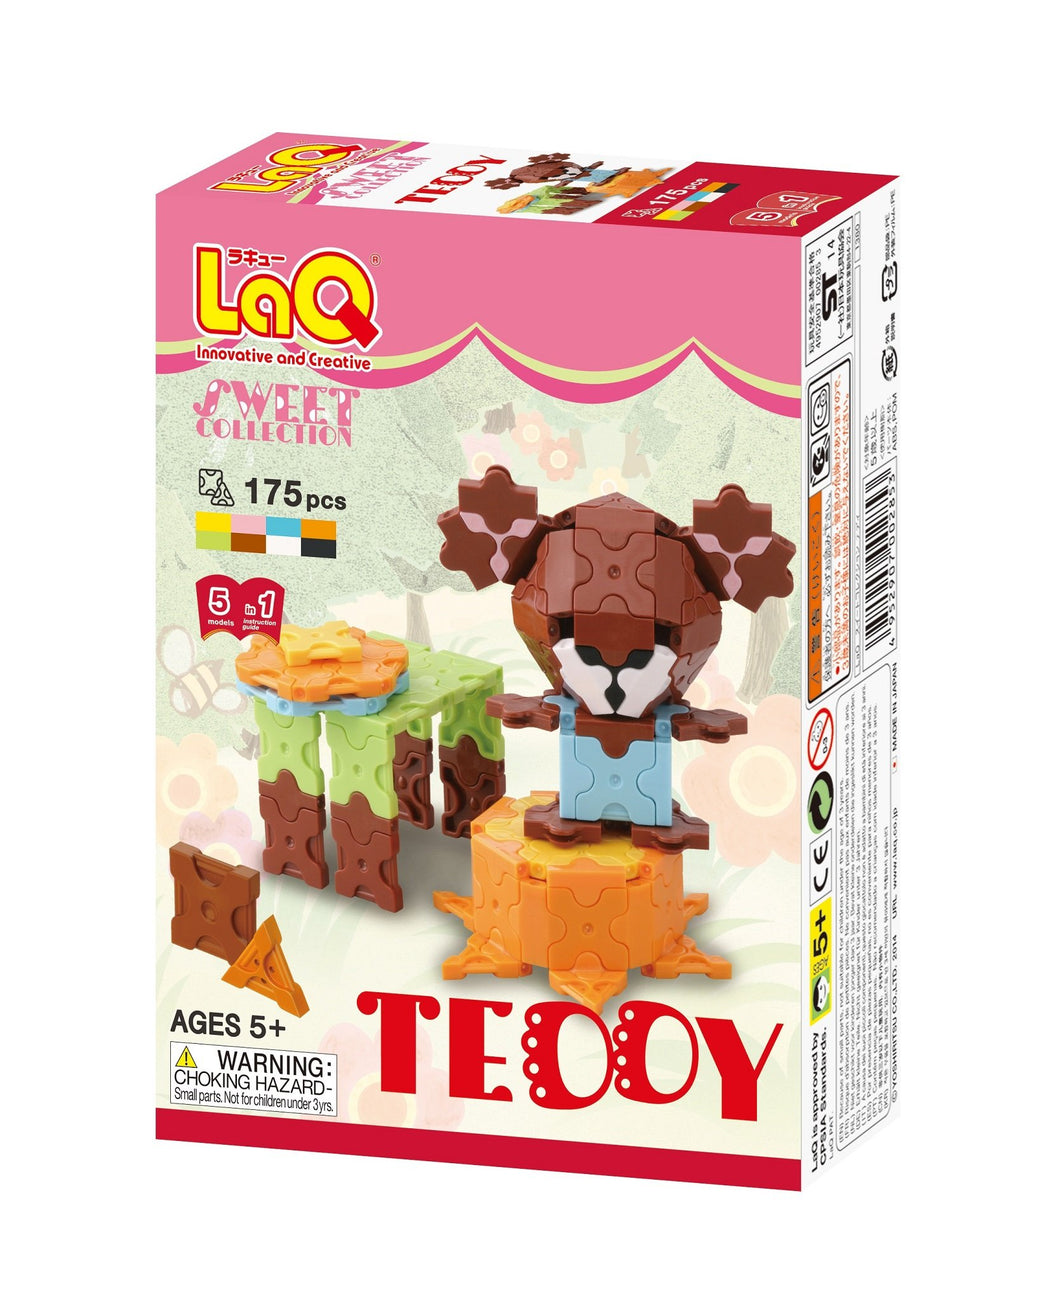 Package front side featured in the LaQ sweet collection teddy set